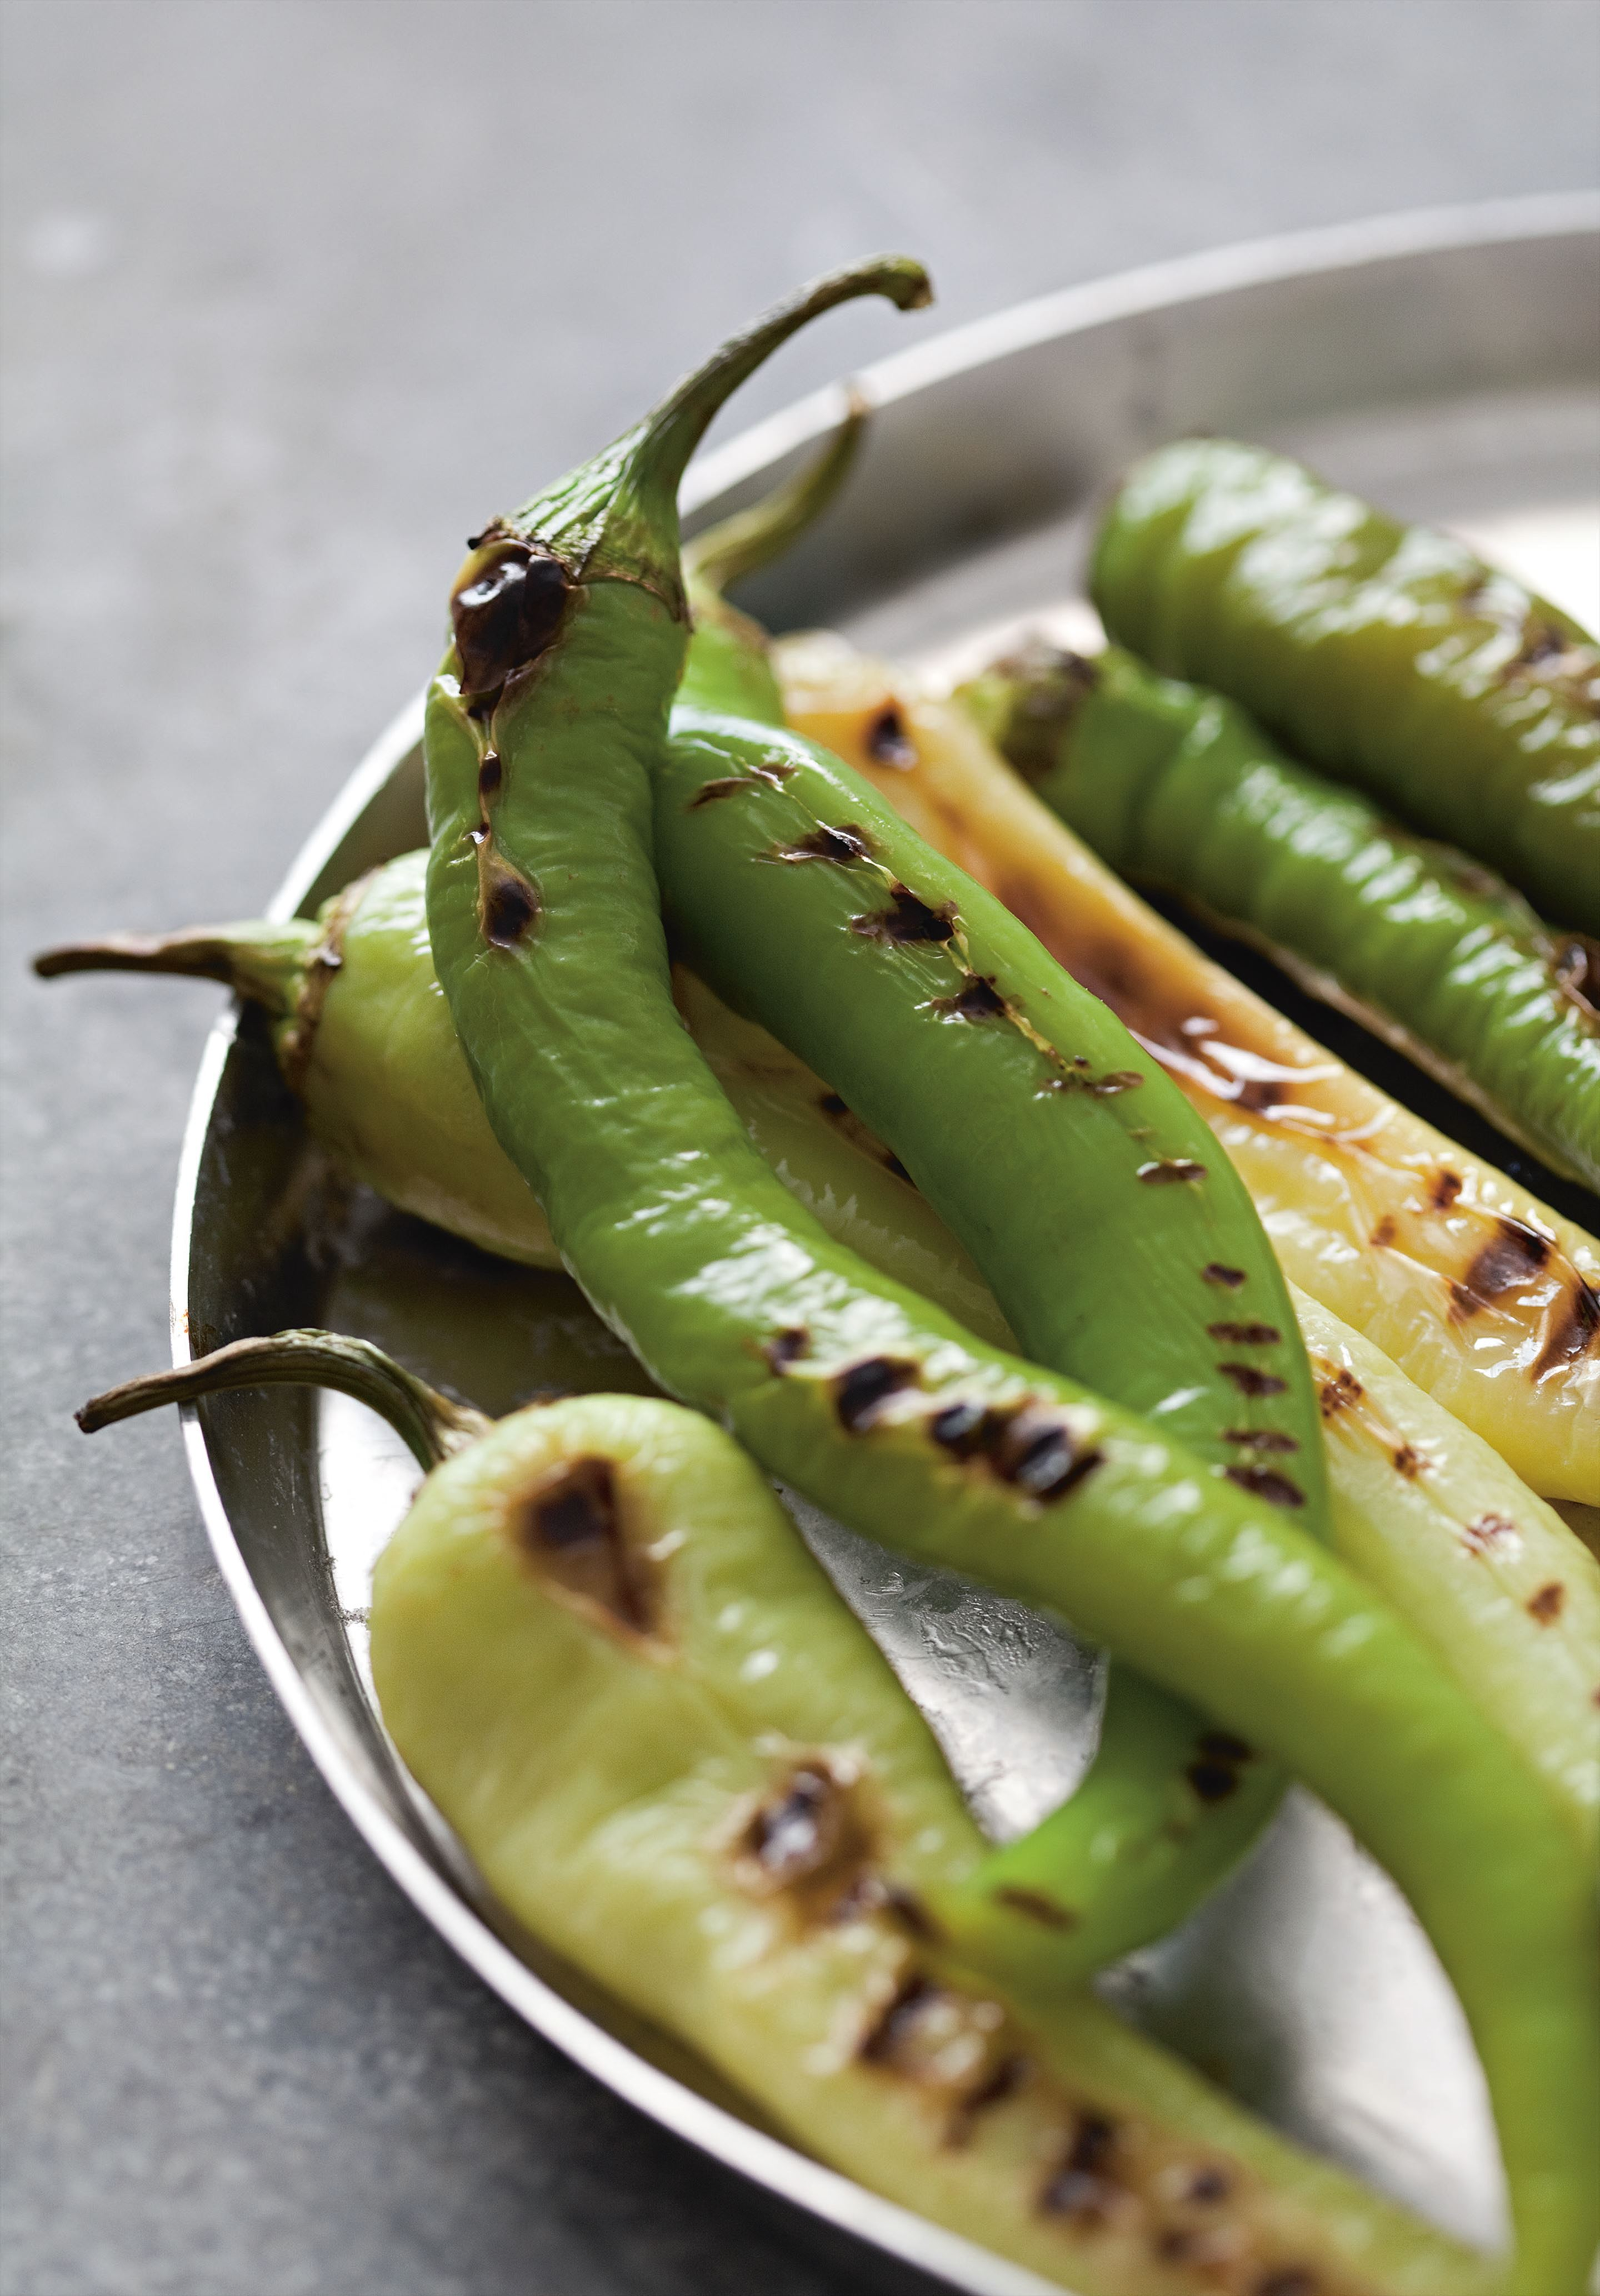 Grilled long green capsicums